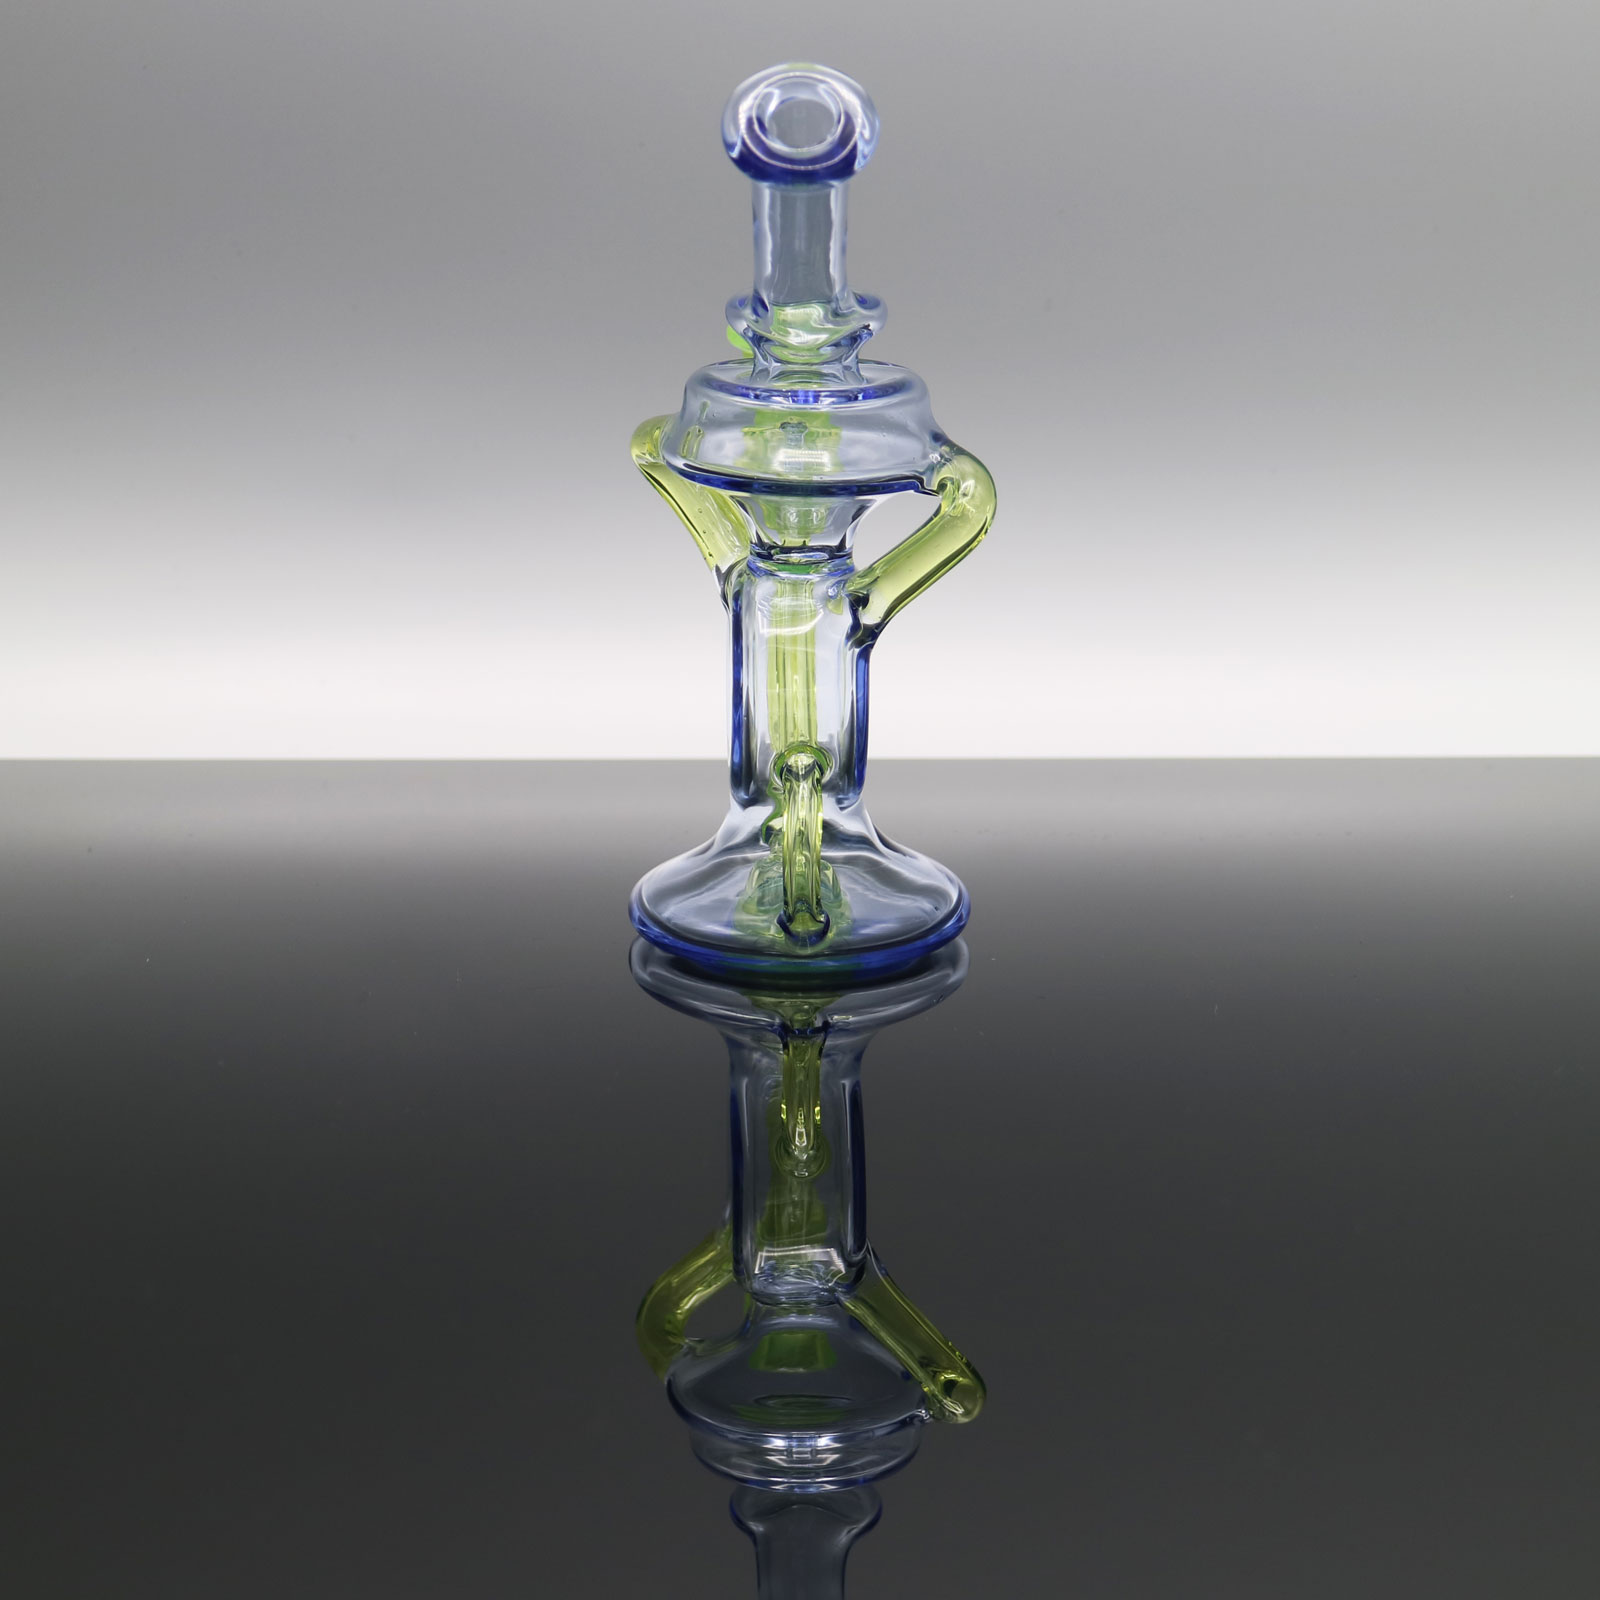 Erik Wichmann – Blue Dreamingo and Sunset Slyme Mini Klein